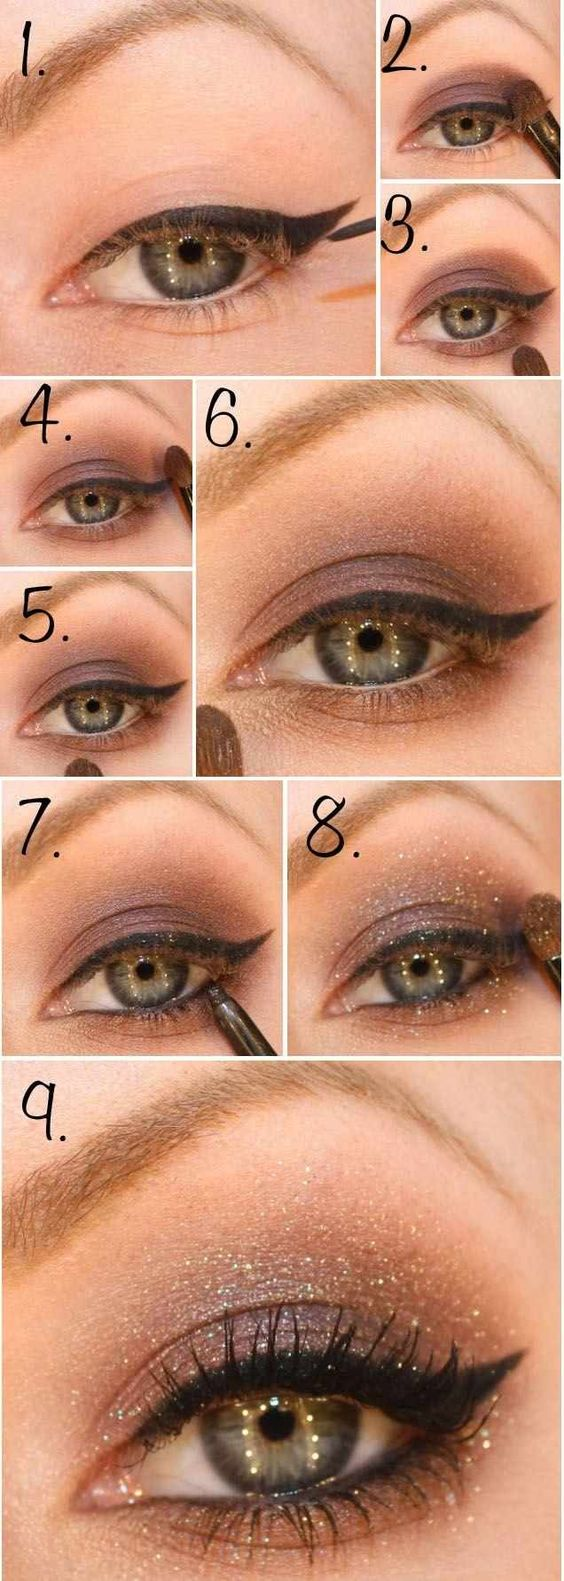 tuto maquillage yeux eye liner fard paupi res marron. Black Bedroom Furniture Sets. Home Design Ideas